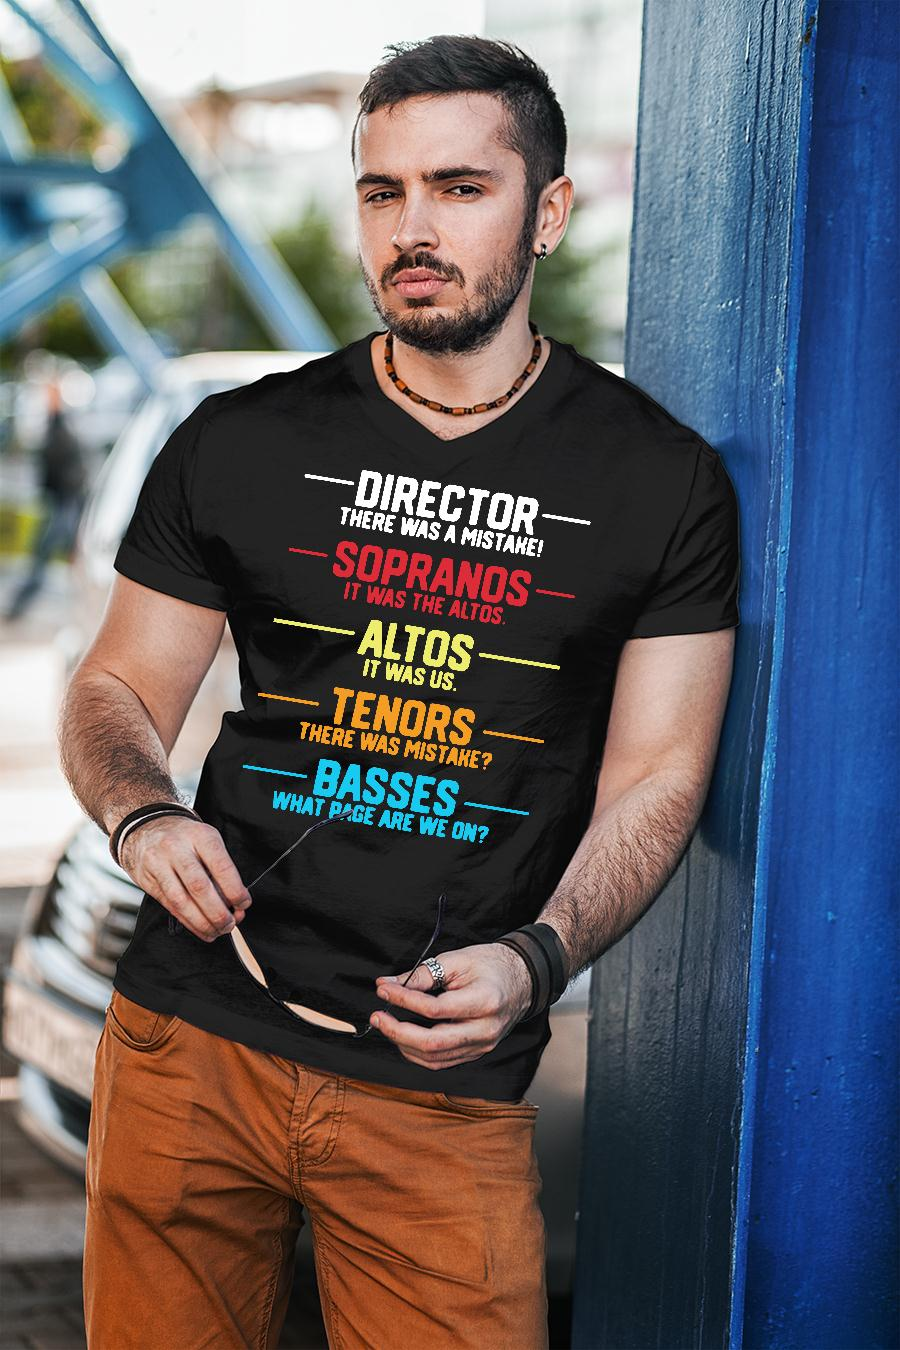 Director there was a mistake sopranos it was the altos altos it was us shirt unisex